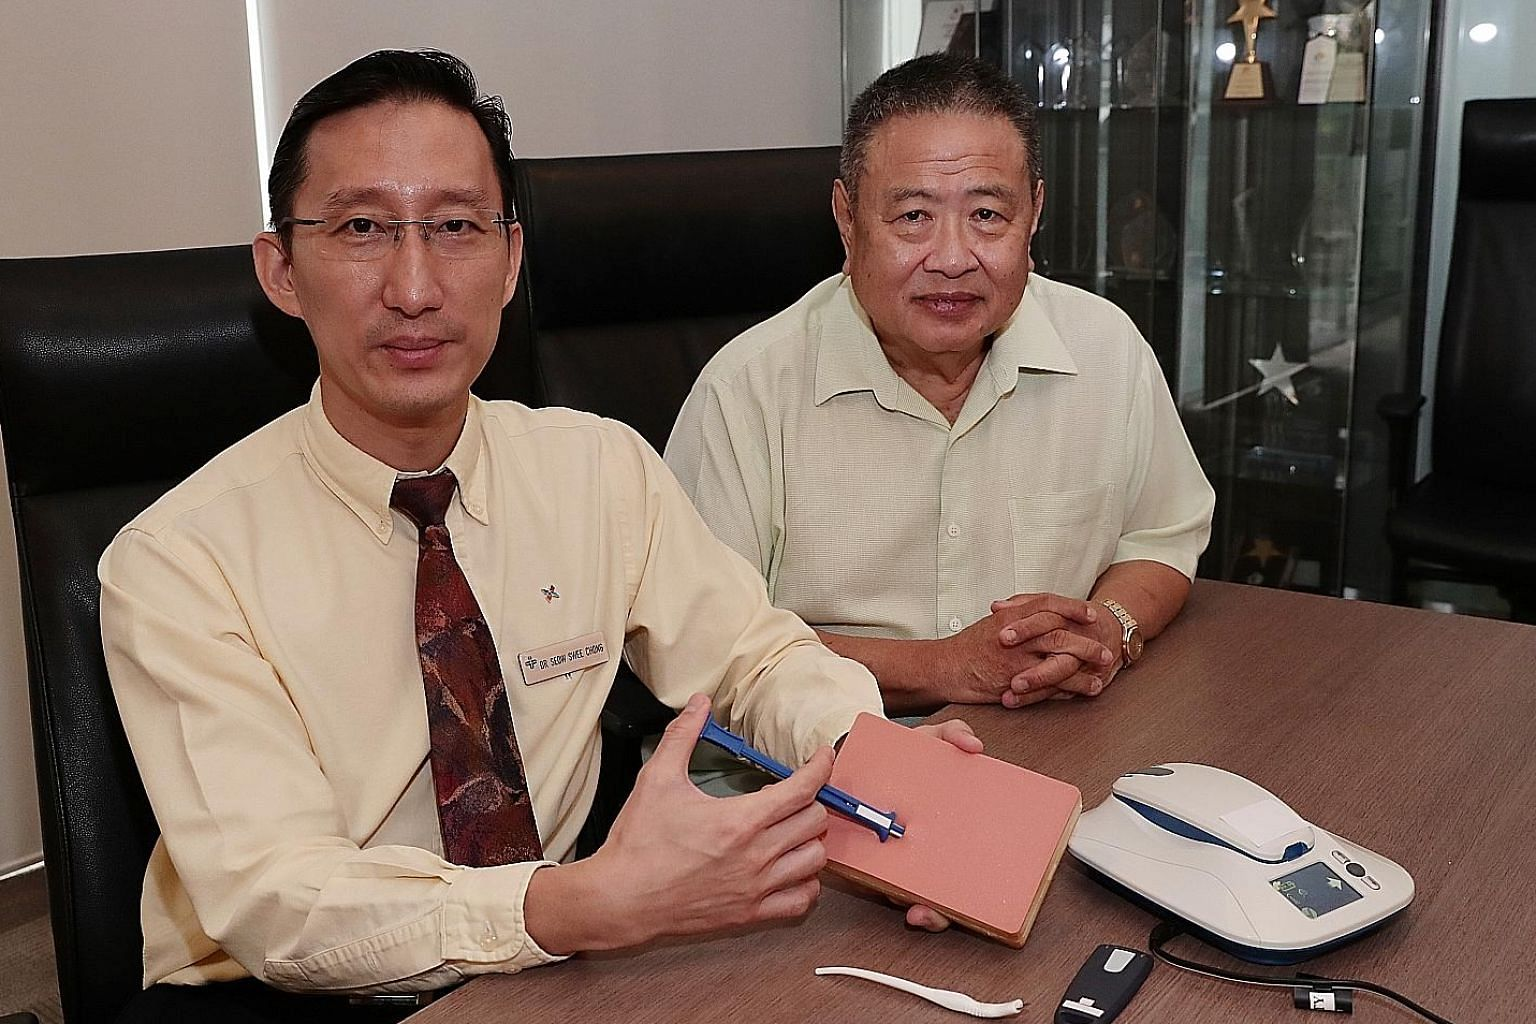 Dr Seow Swee Chong (left), a senior consultant at the National University Heart Centre's Department of Cardiology, and his patient Ng Kok Seng, 65, who has an Insertable Cardiac Monitor implanted in his chest. In the picture, Dr Seow is demonstrating